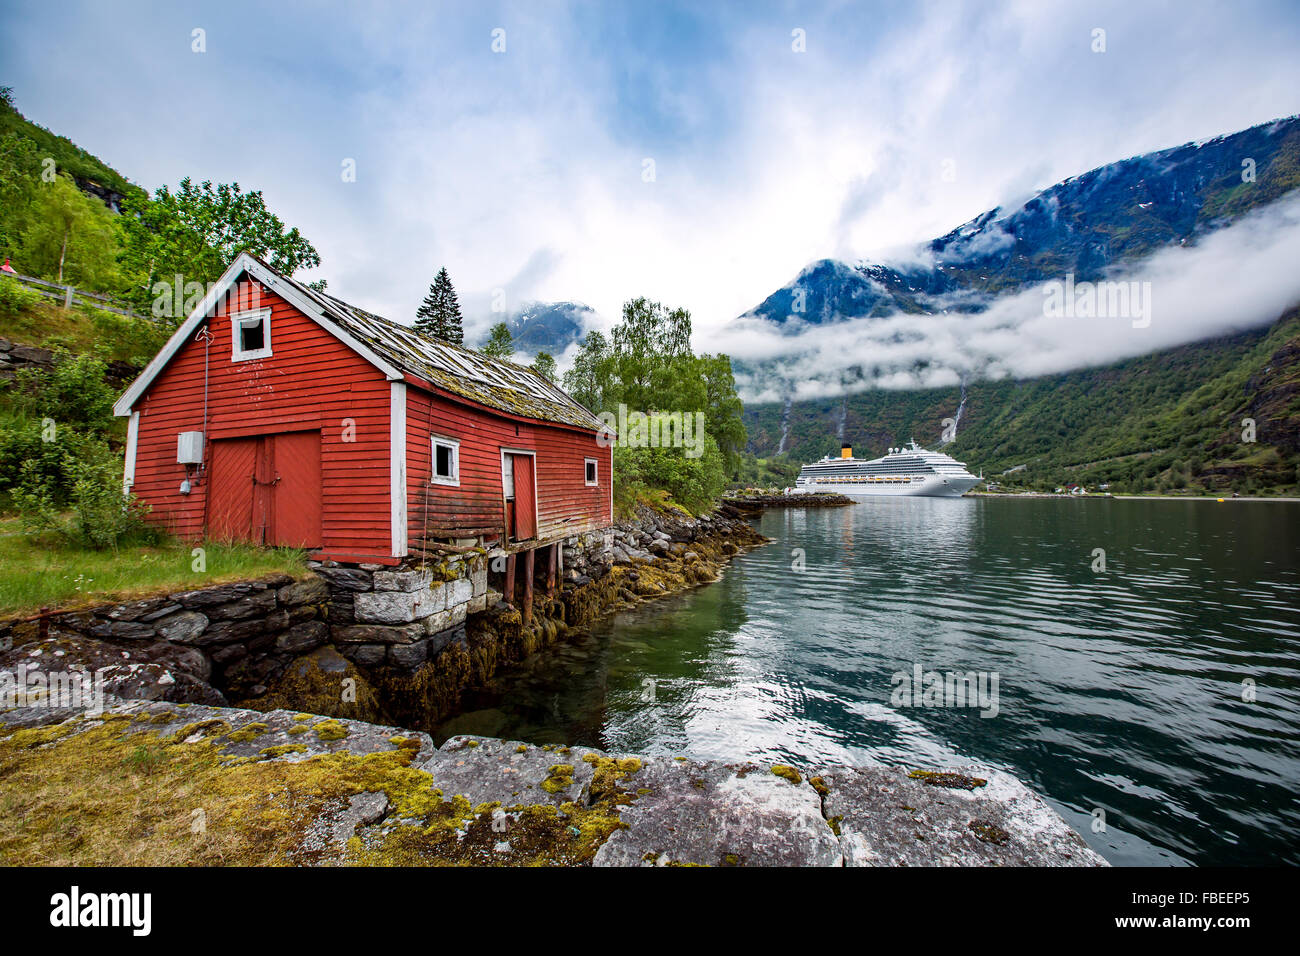 Norway landscape, the house on the shore of the fjord in the background berth cruise ship. - Stock Image